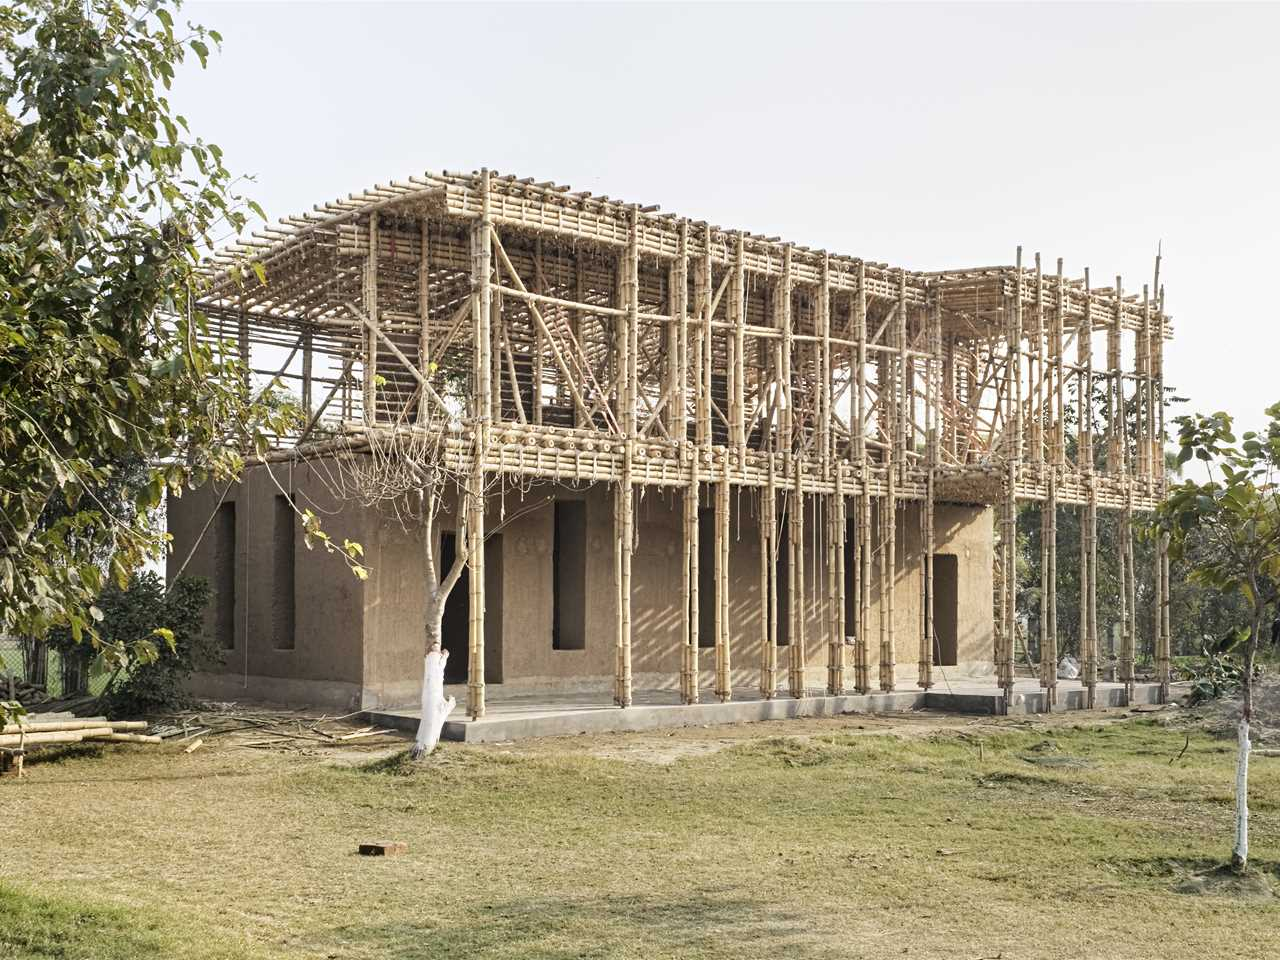 Locally-manufactured cob and bamboo school building